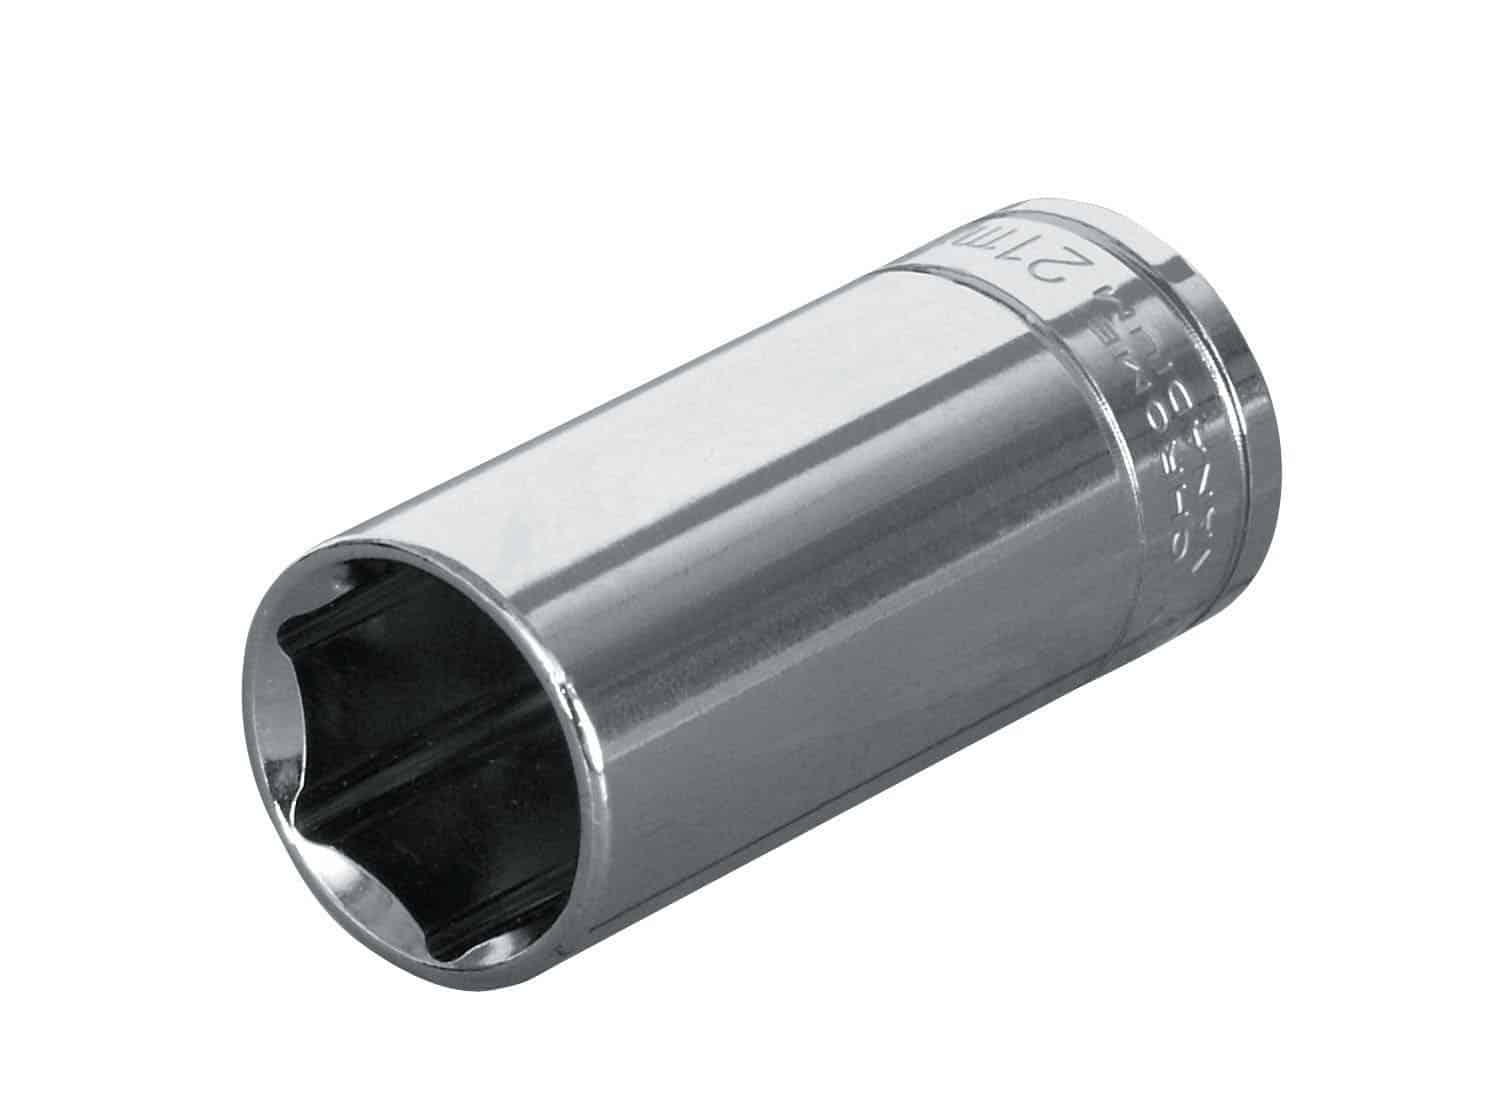 EXPERT E030216 - 1/4in Dr. Deep Socket 12Pt 6mm